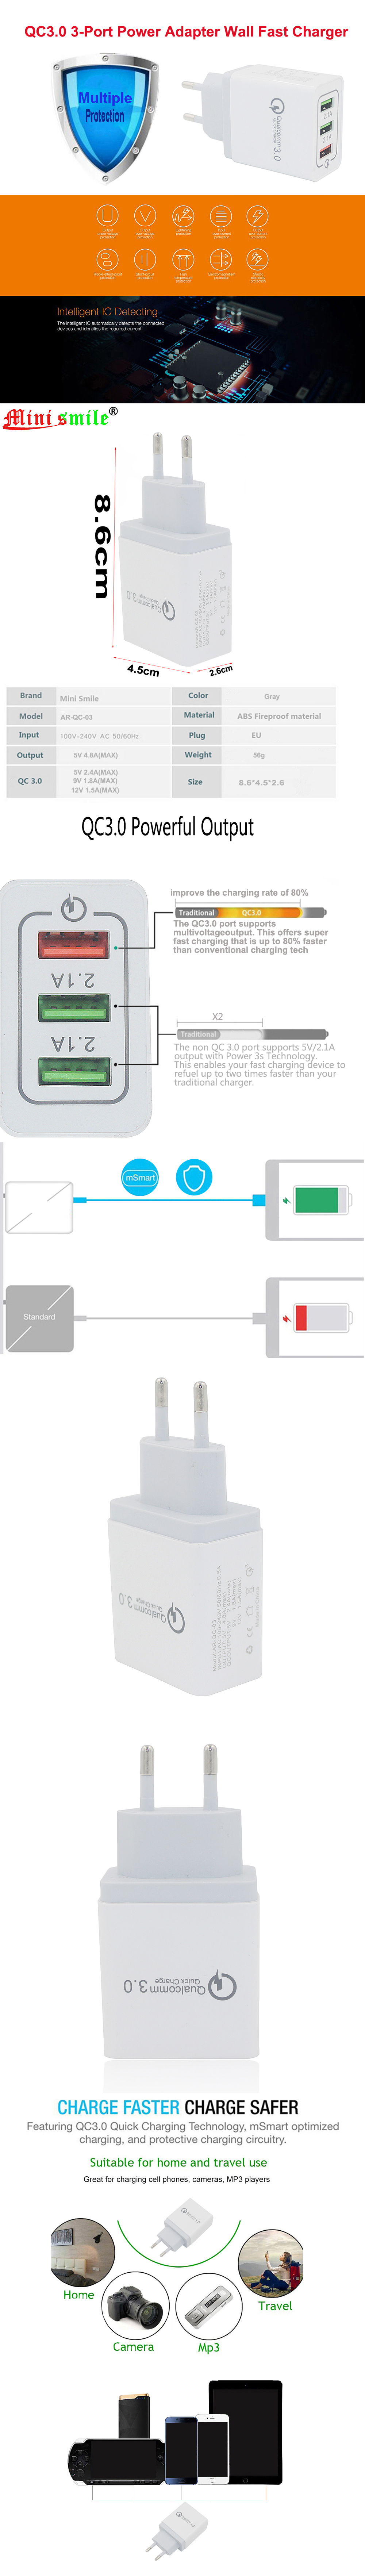 Minismile Qualcomm Quick Charge 3.0 3-Port Power Adapter Wall Fast Charger